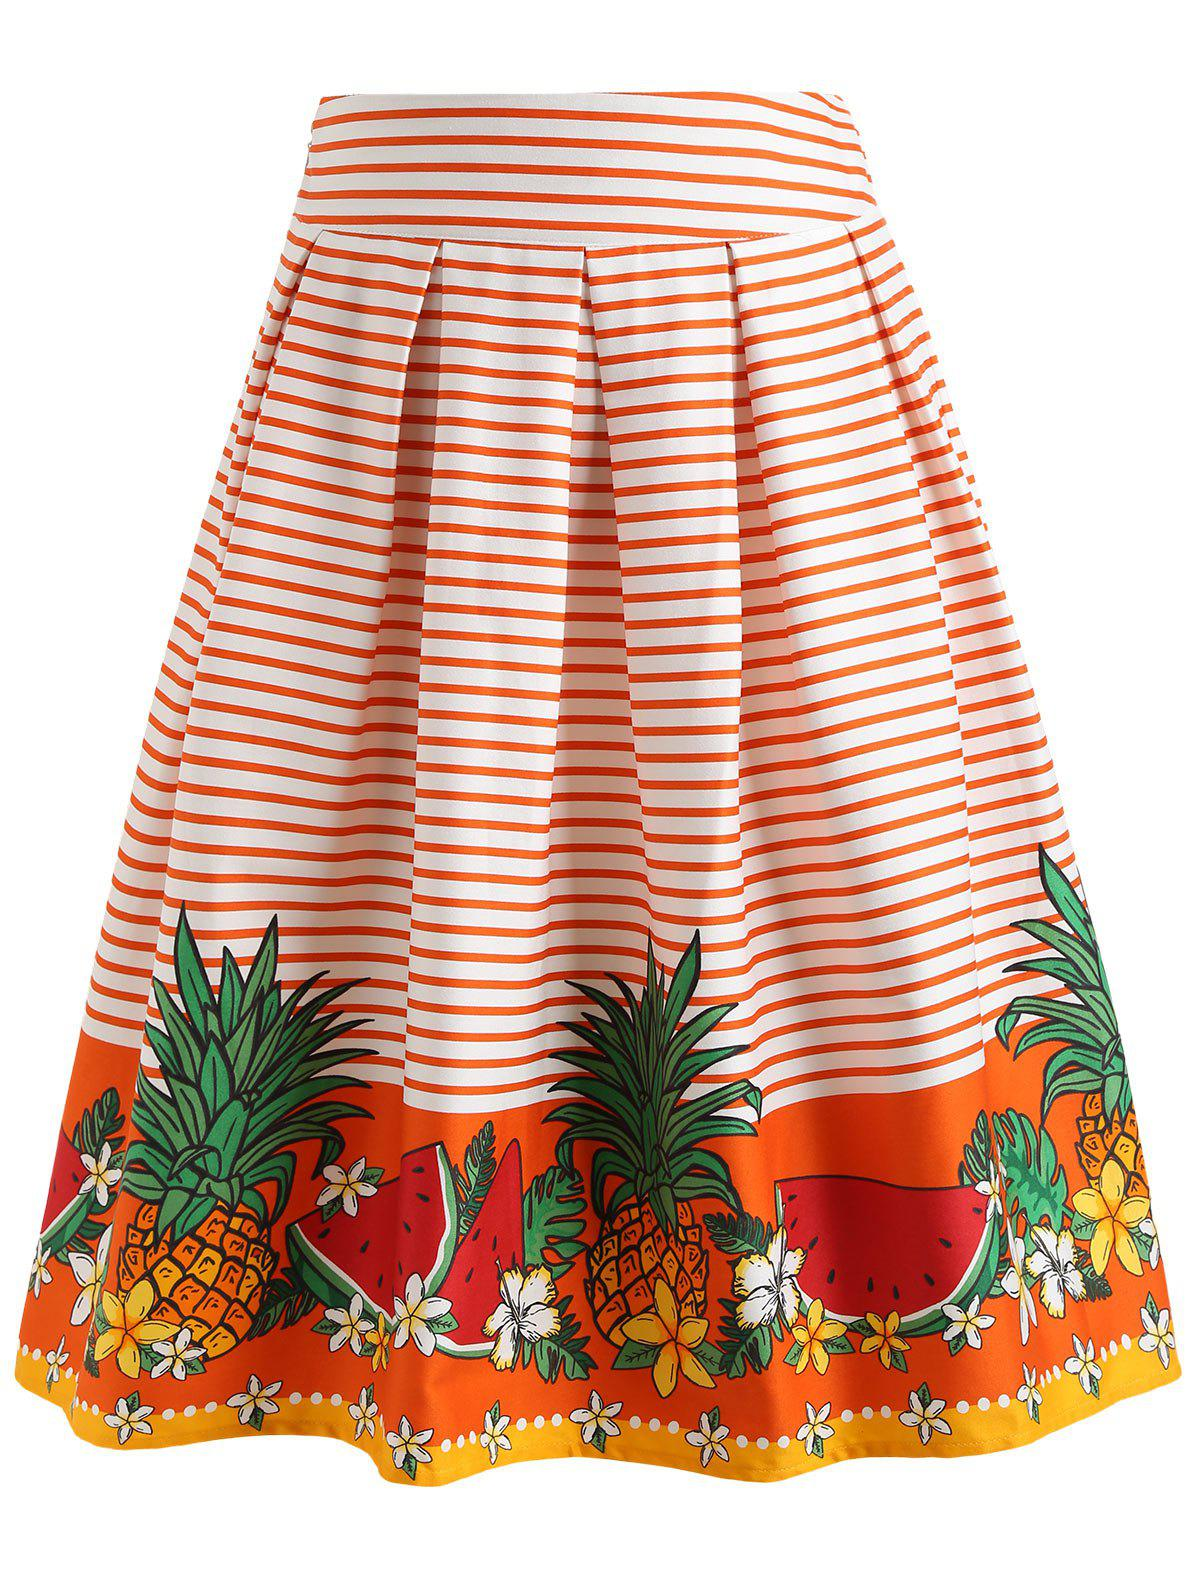 Striped Pineapple A Line Skirt - ORANGE M